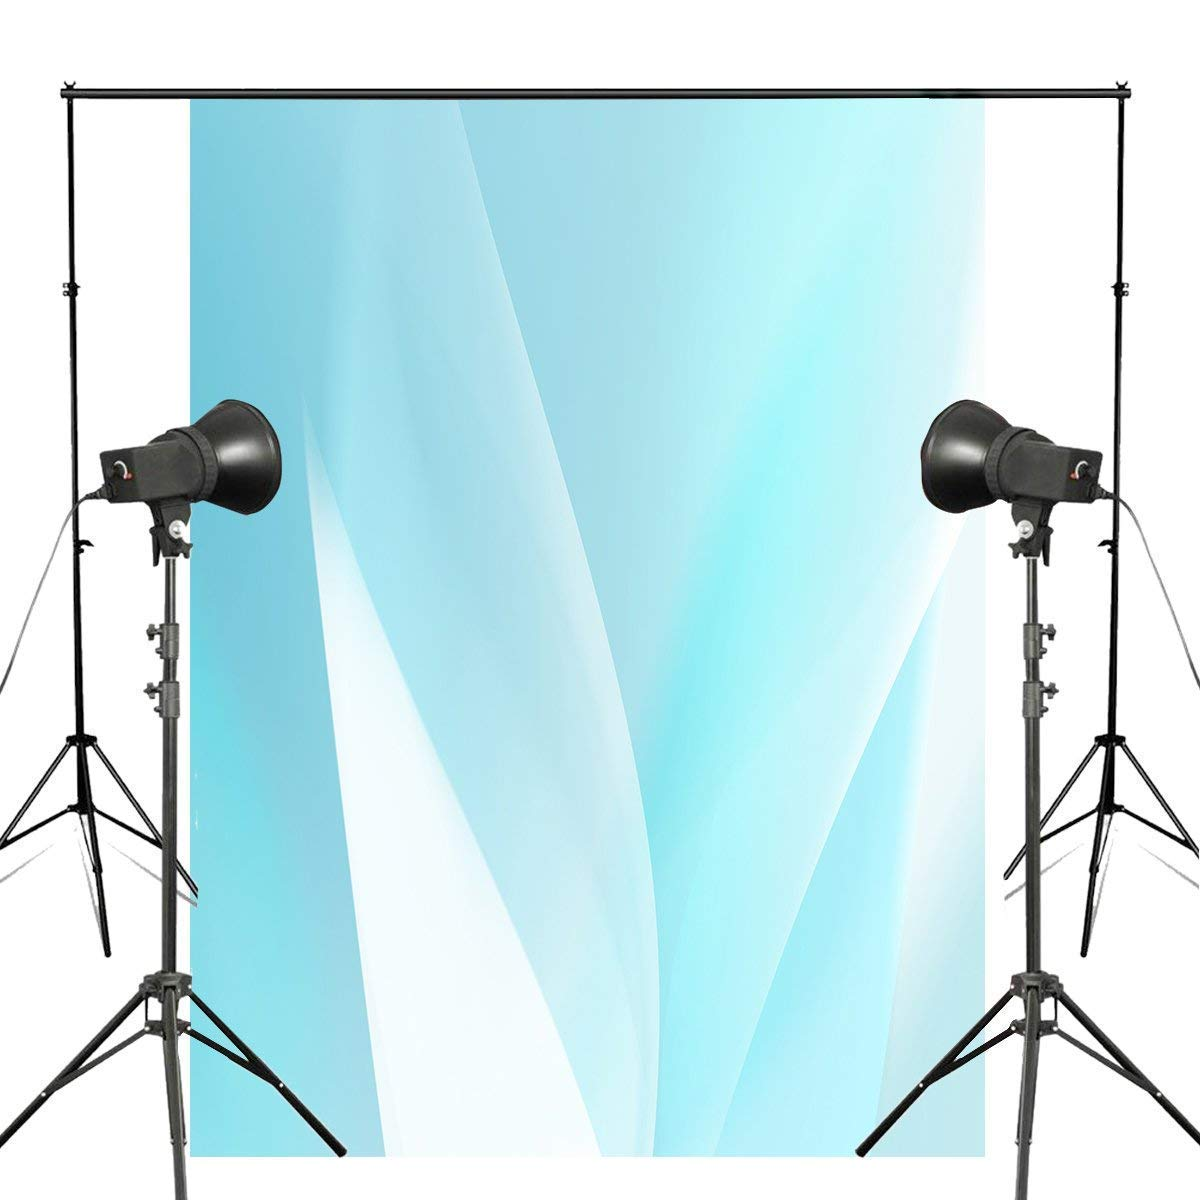 ERTIANANG 5x7ft Abstract Photography Backdrop Light Blue Background Art Photo Studio Backdrop Wall